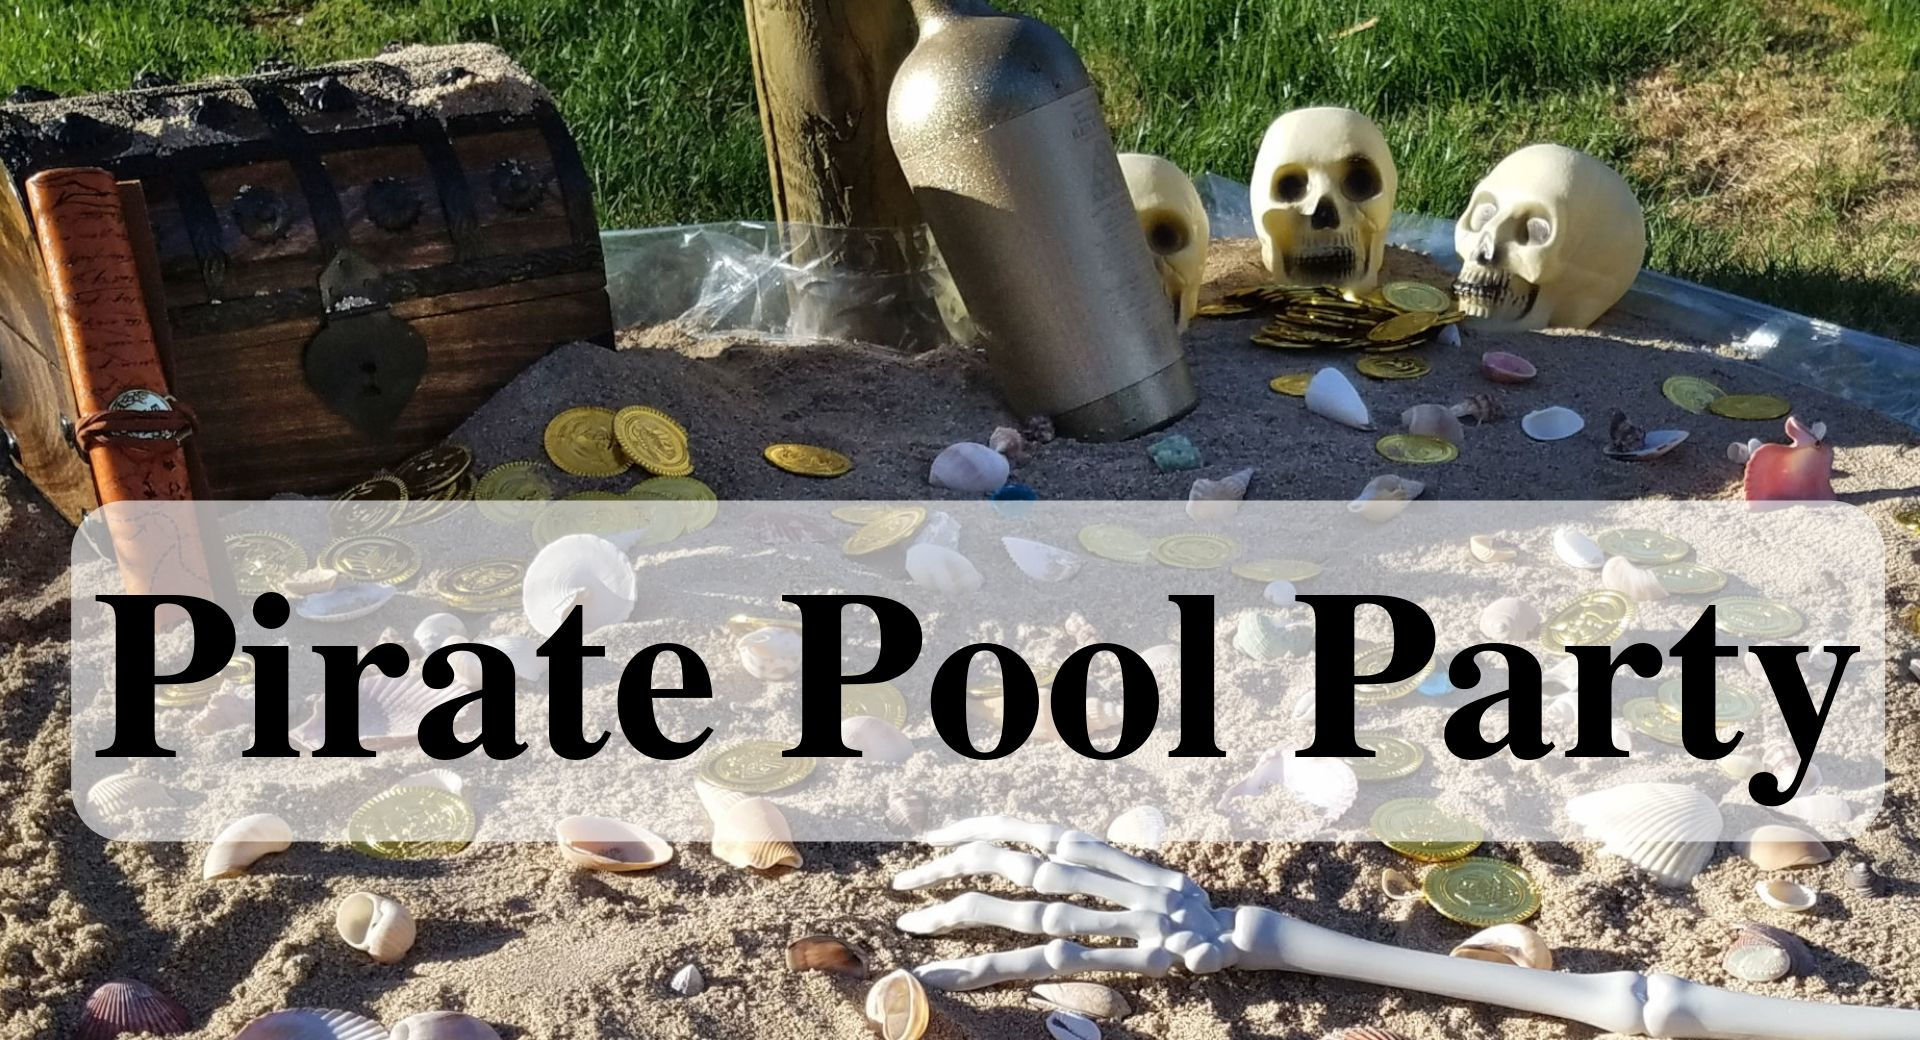 Pirate Pool Party Forever sabbatical main